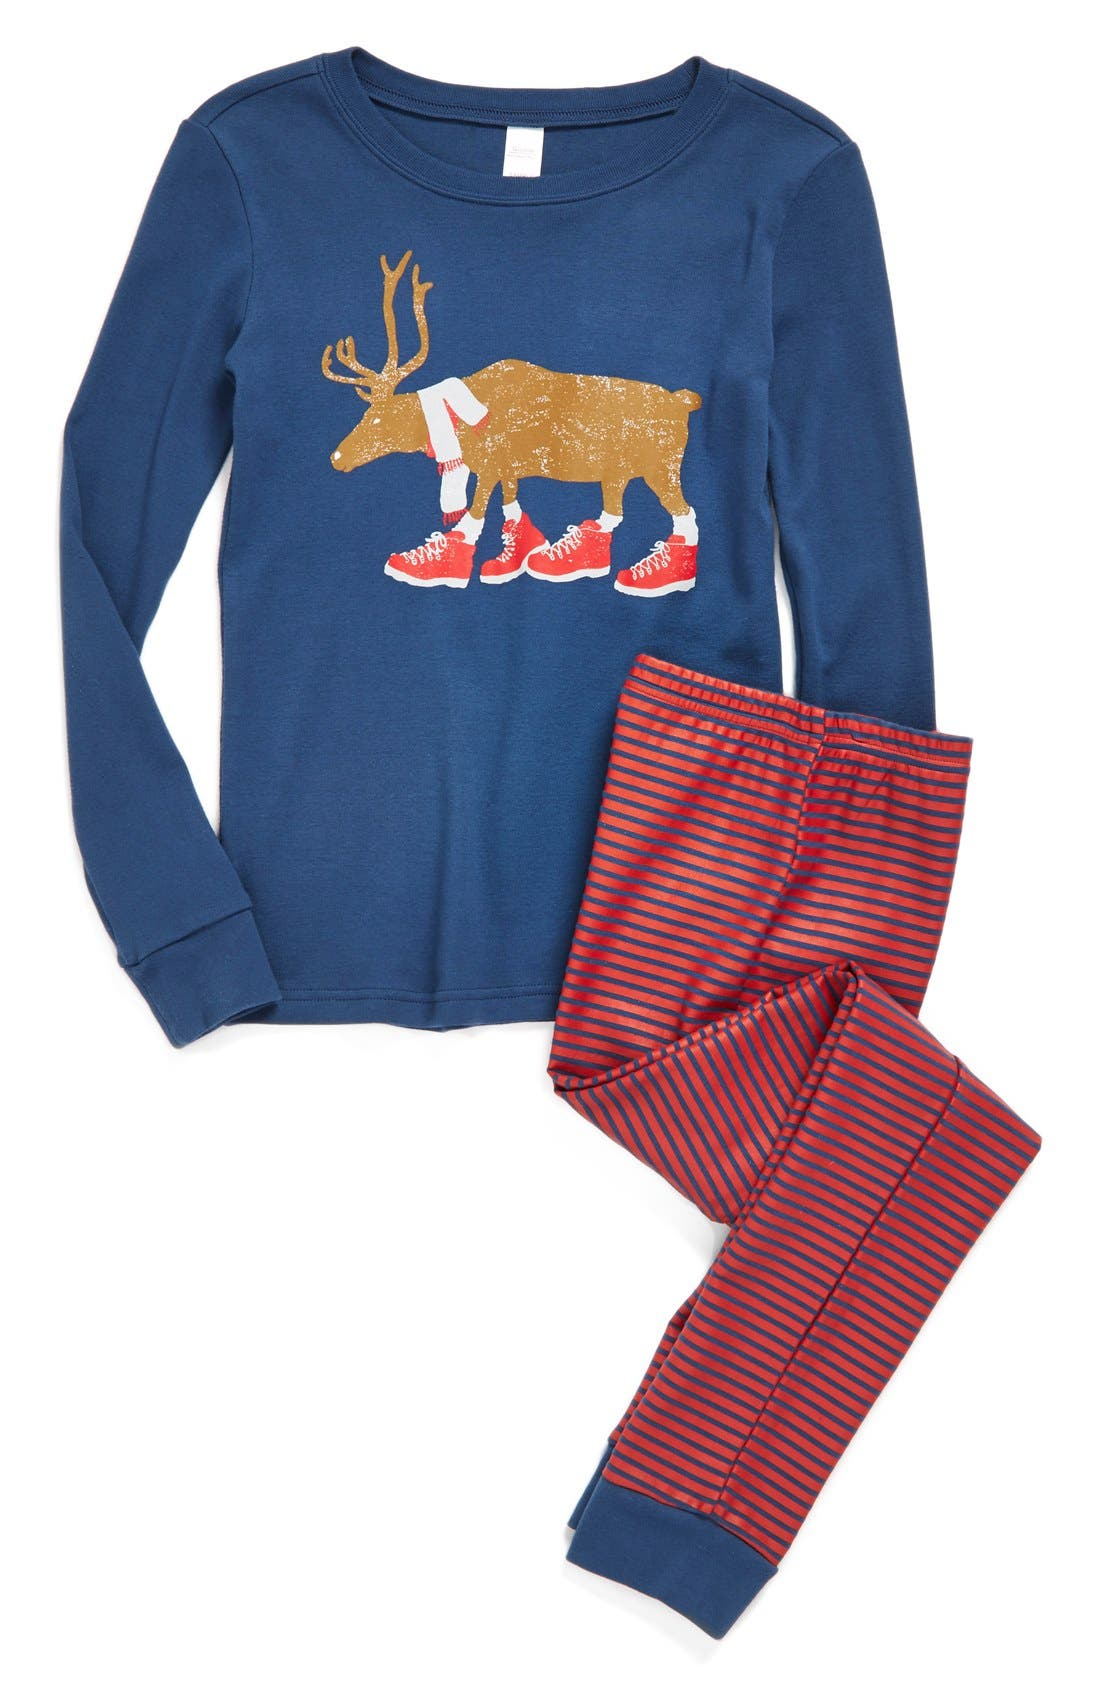 Fitted Two-Piece Pajamas,                         Main,                         color, Navy Denim Reindeer